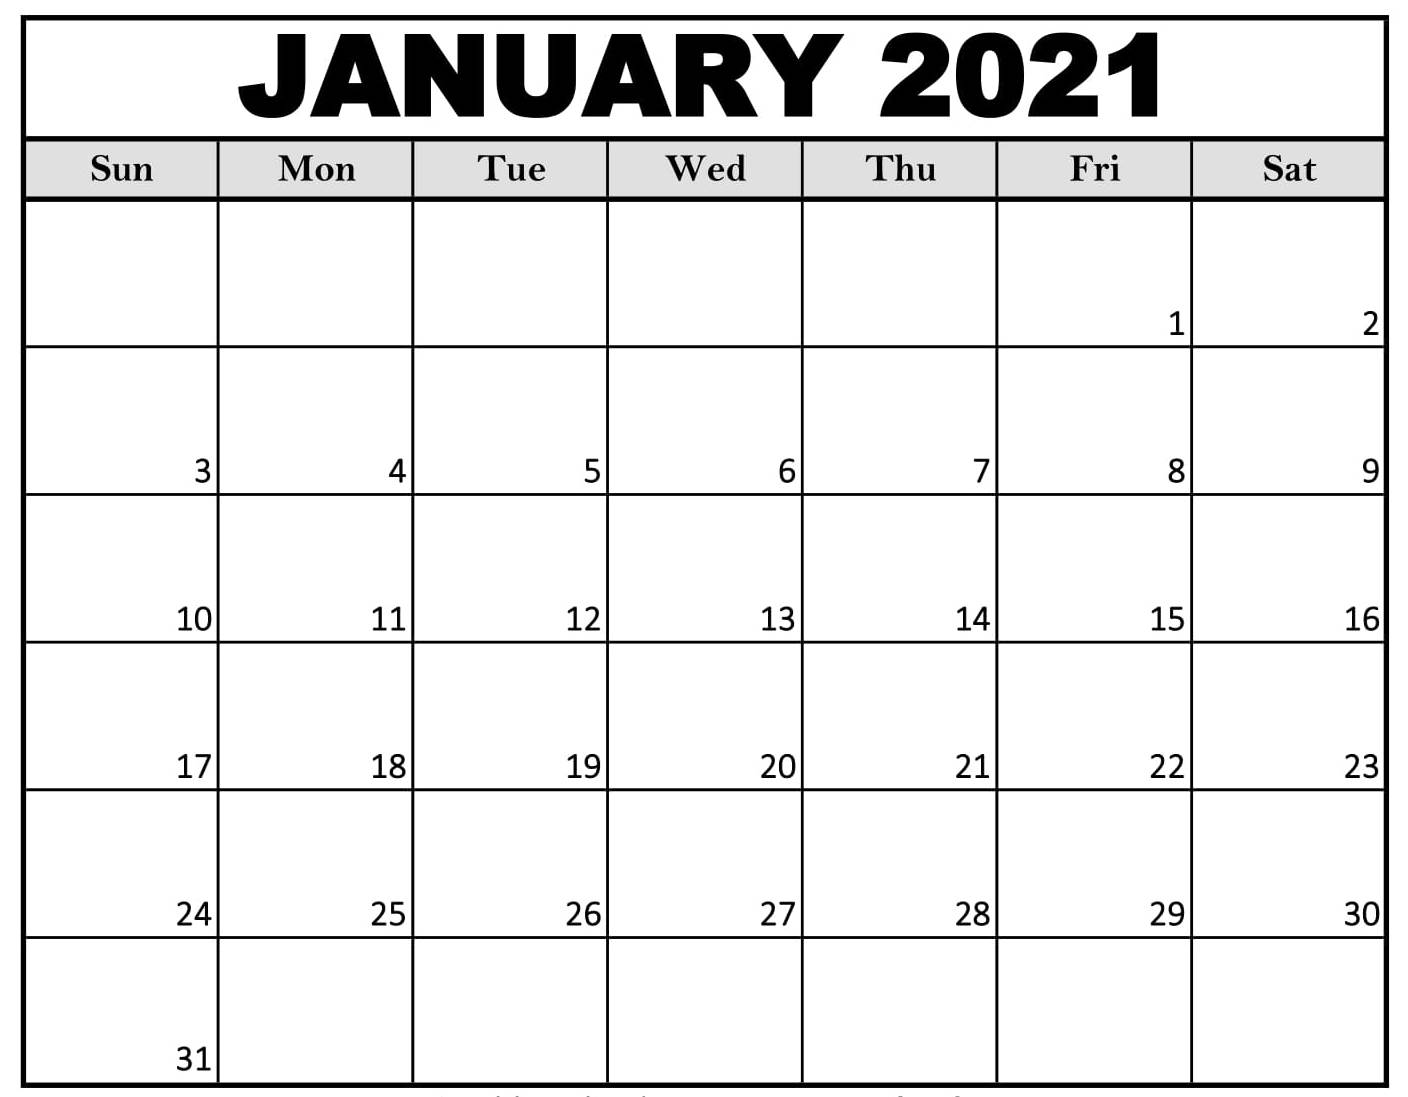 January 2021 Calendar US Holidays Printable